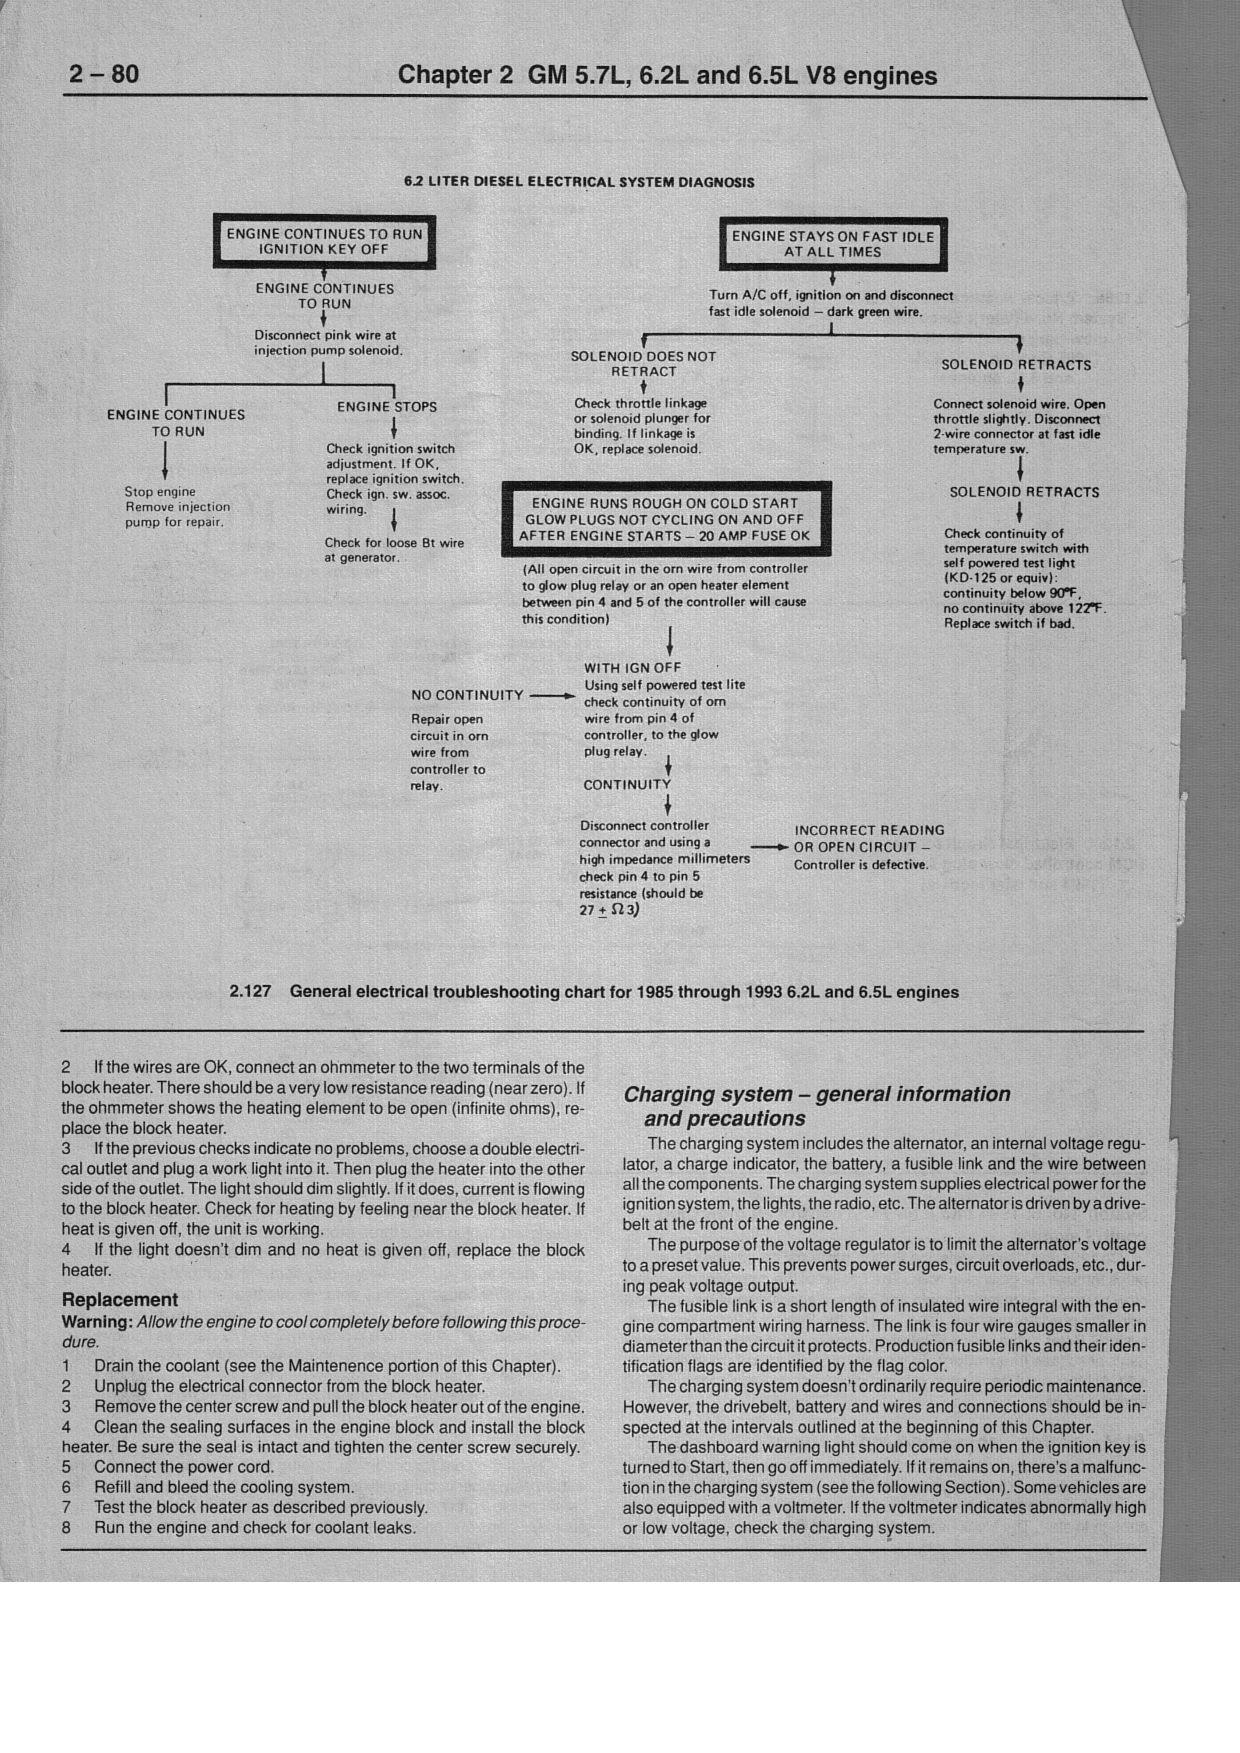 Based In Atlanta Ga With A 1988 Chevy C30 62 Ltr Engine Turns Gm Glow Plug Wiring I Will Send Controller Test List Few Minthanksdavehere Are The Diagnostic Charts For Systemafter You Have Gone Through These